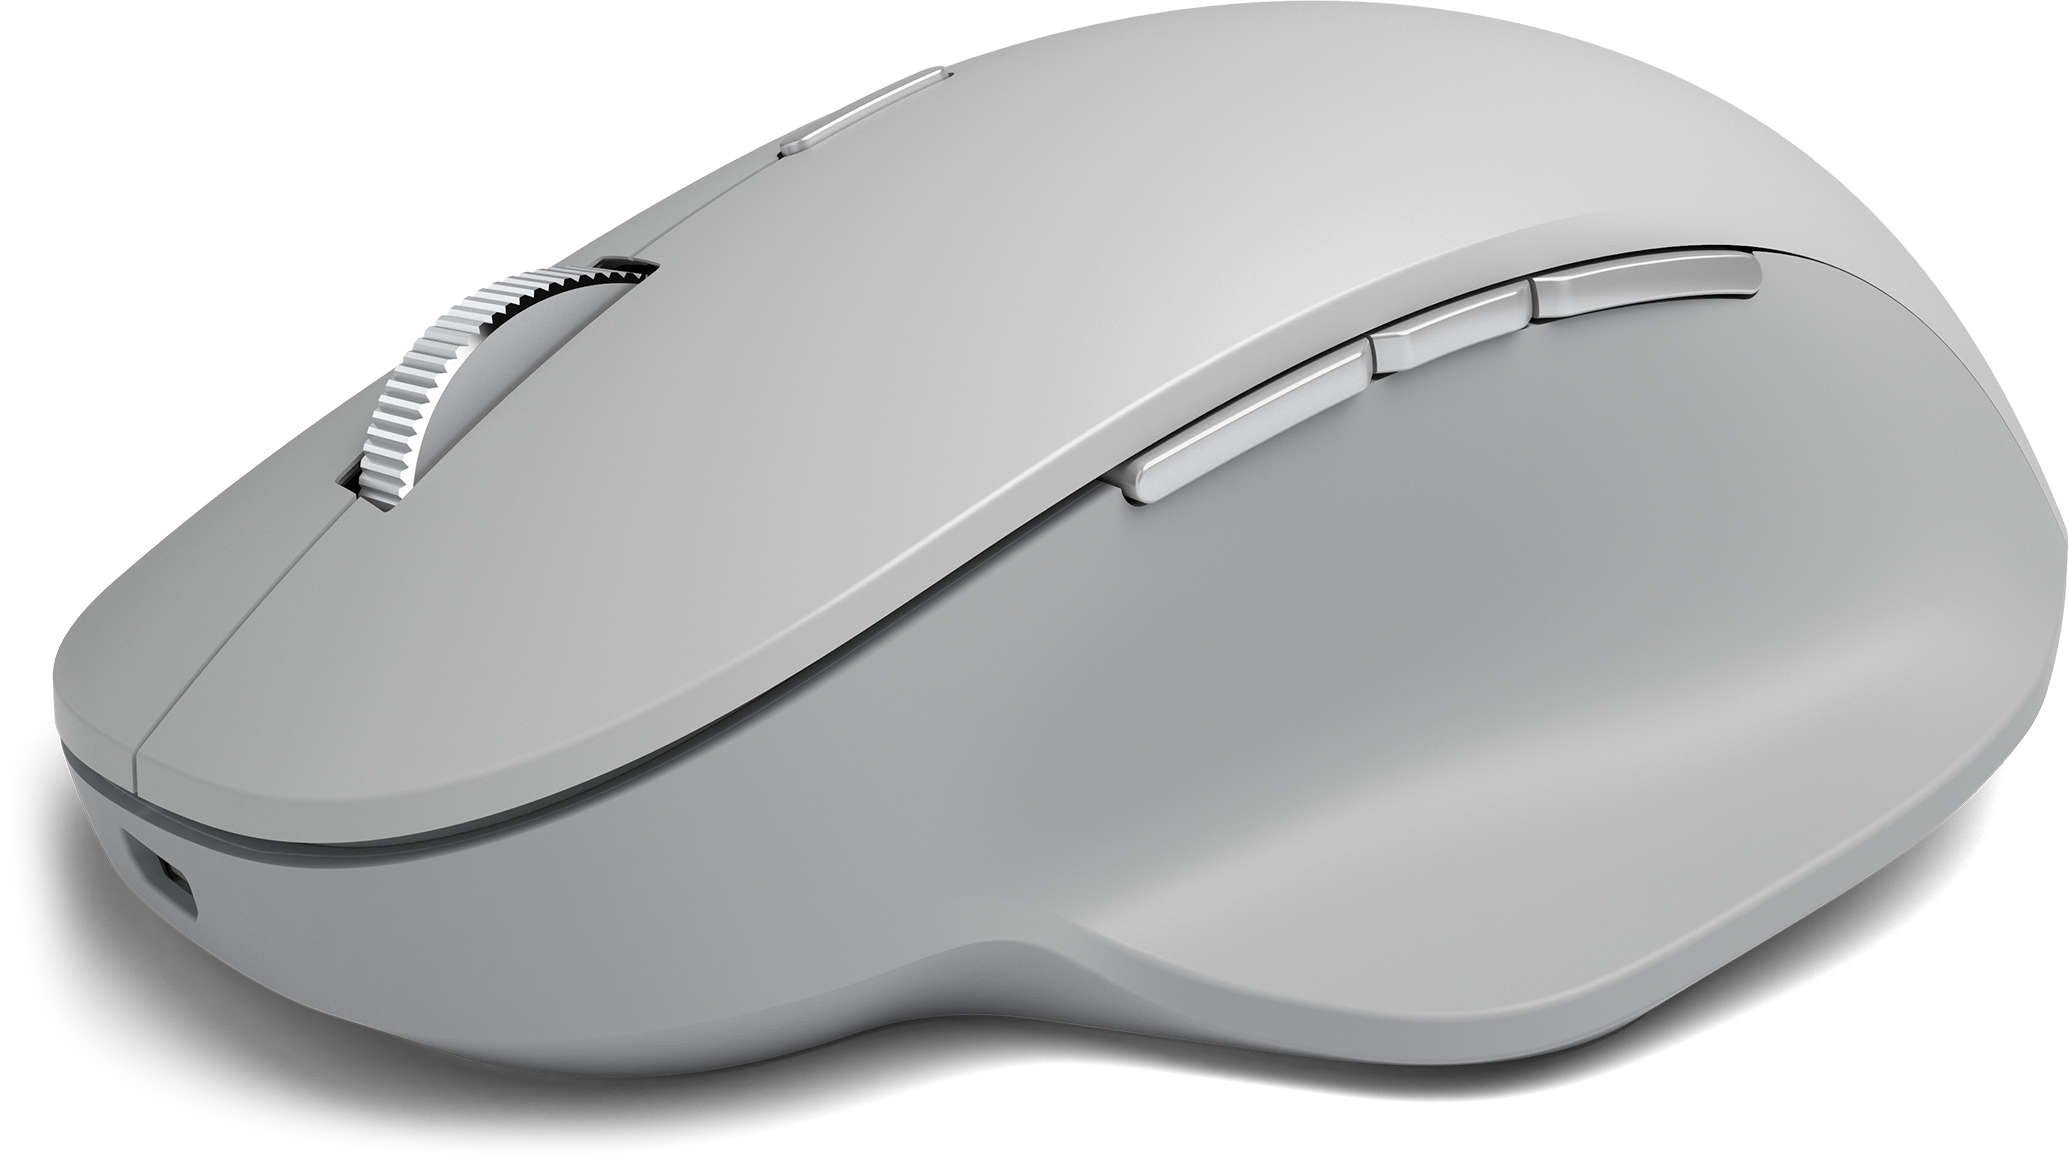 RE1FJWY?ver=0545 - Surface Precision Mouse